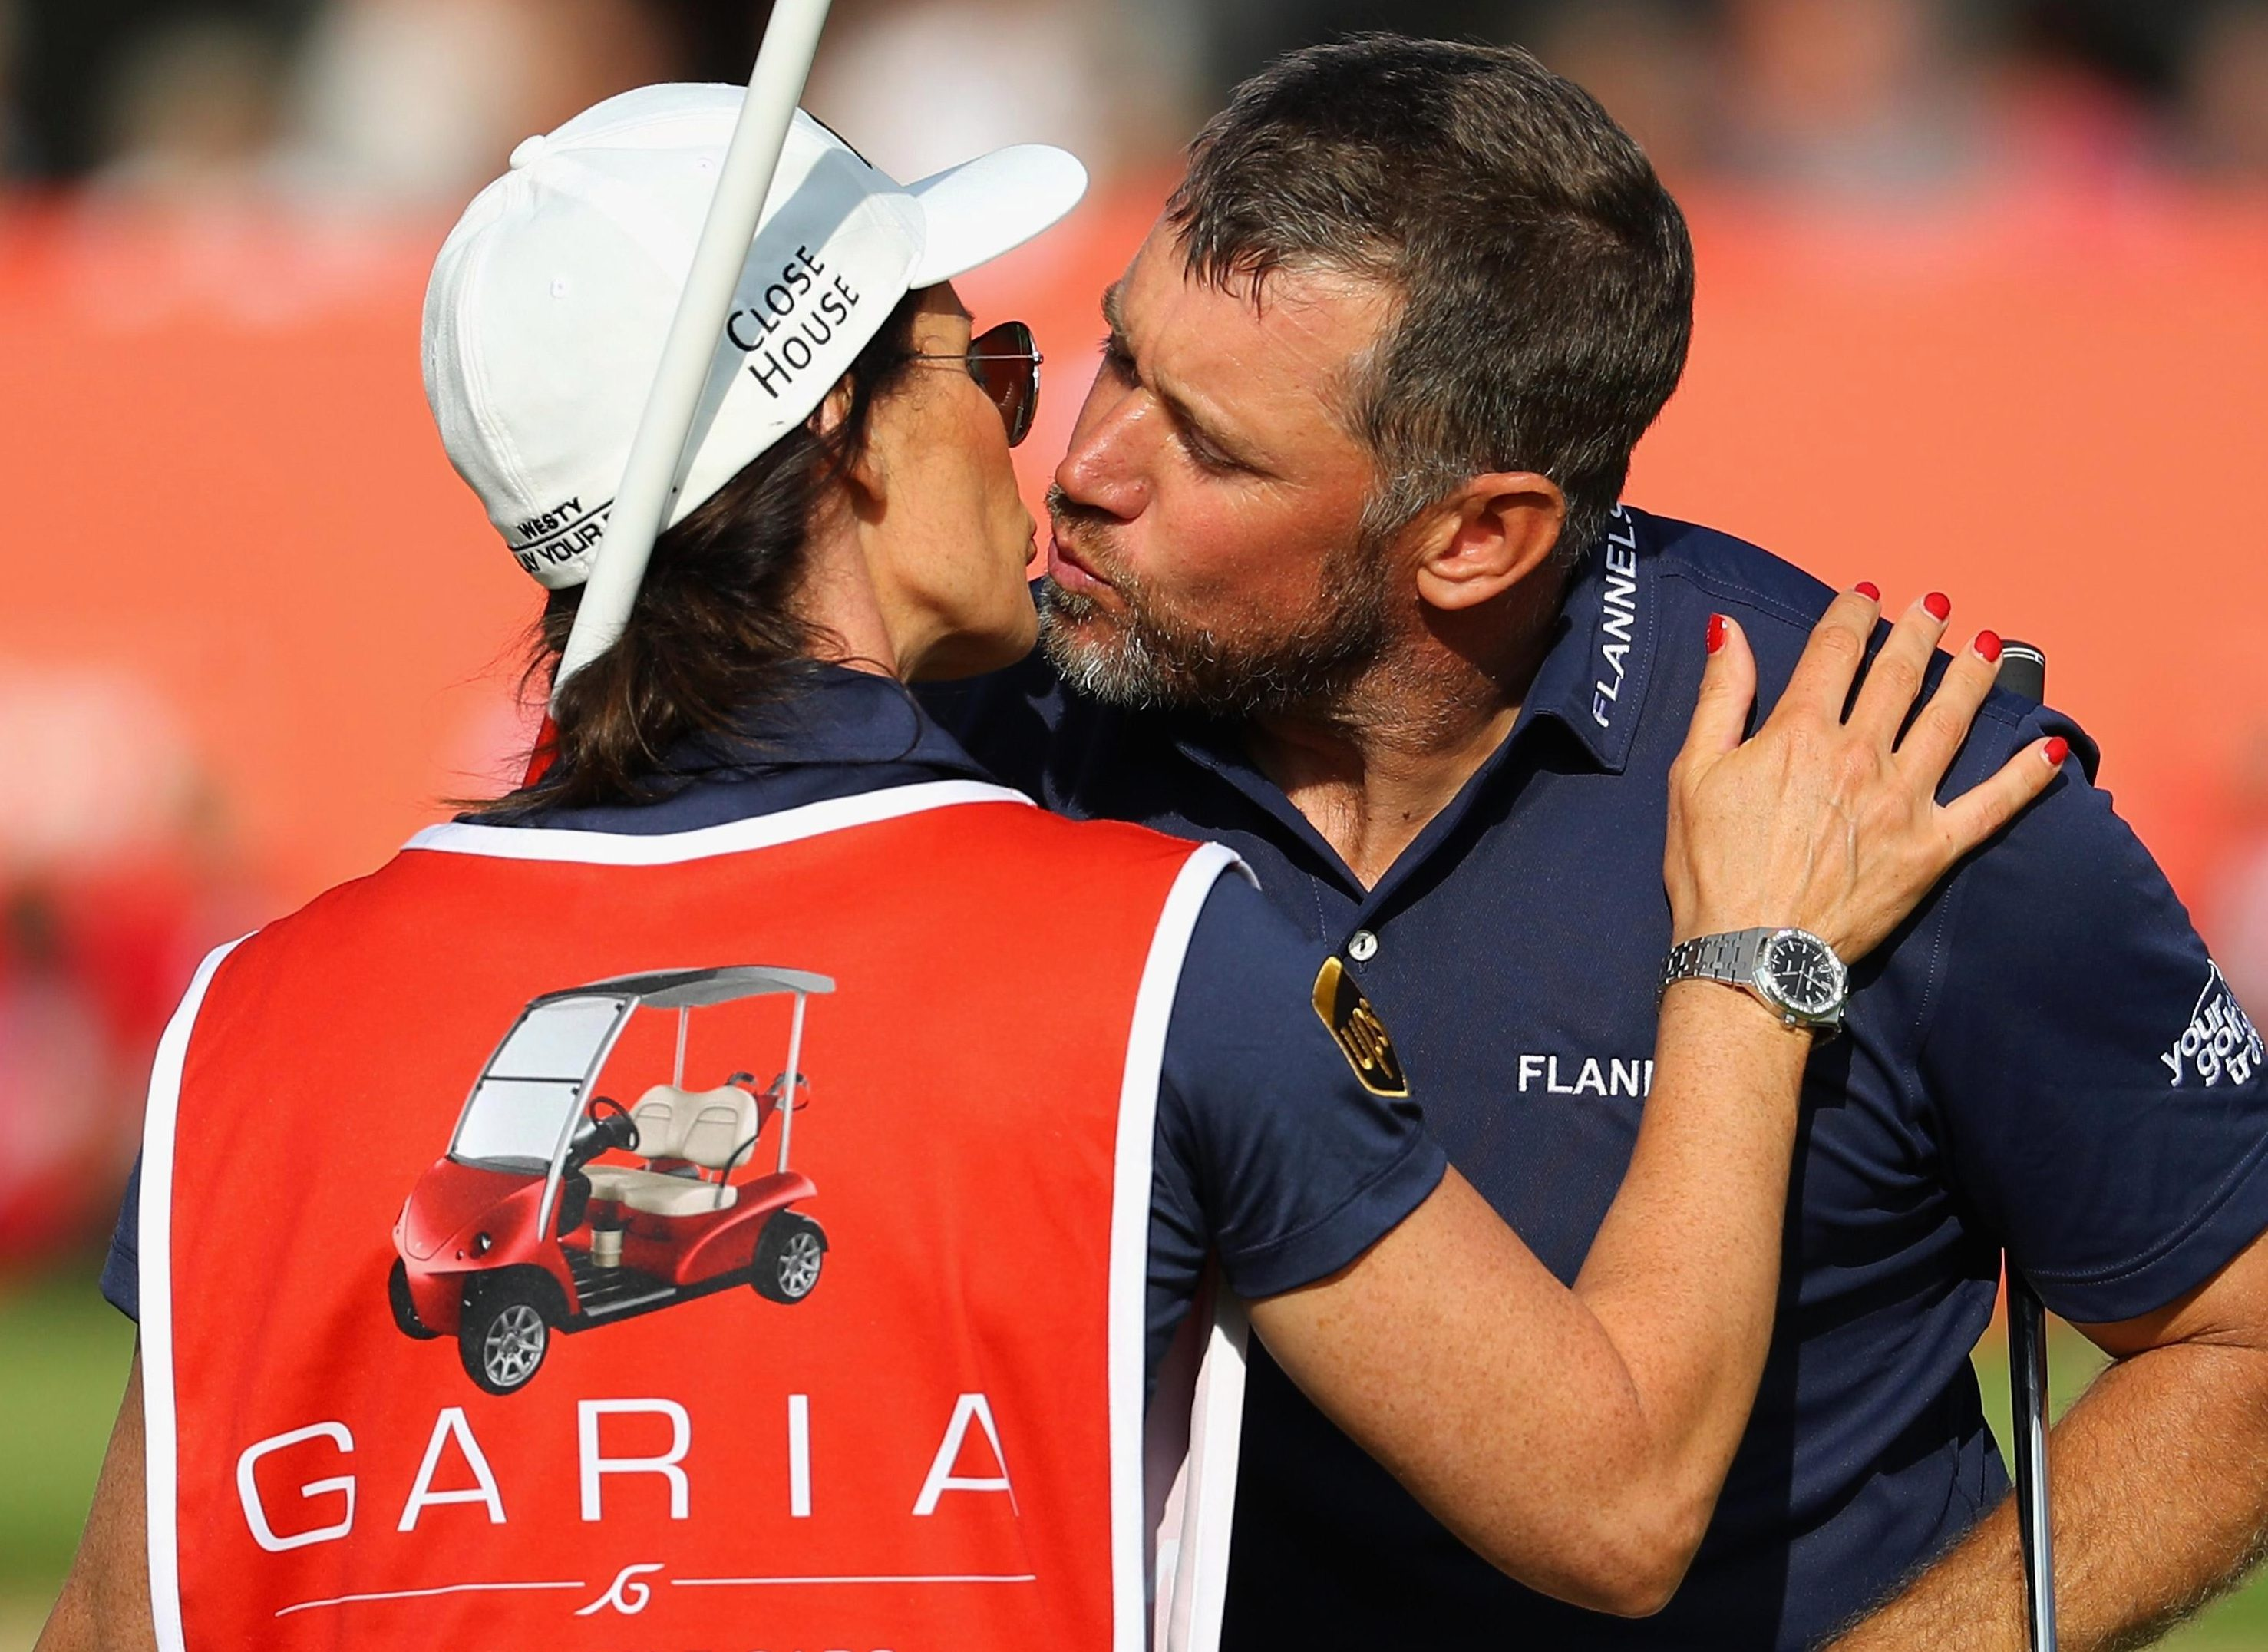 Westwood gave his usual caddy the week off in Denmark, replacing him with Helen Storey in September